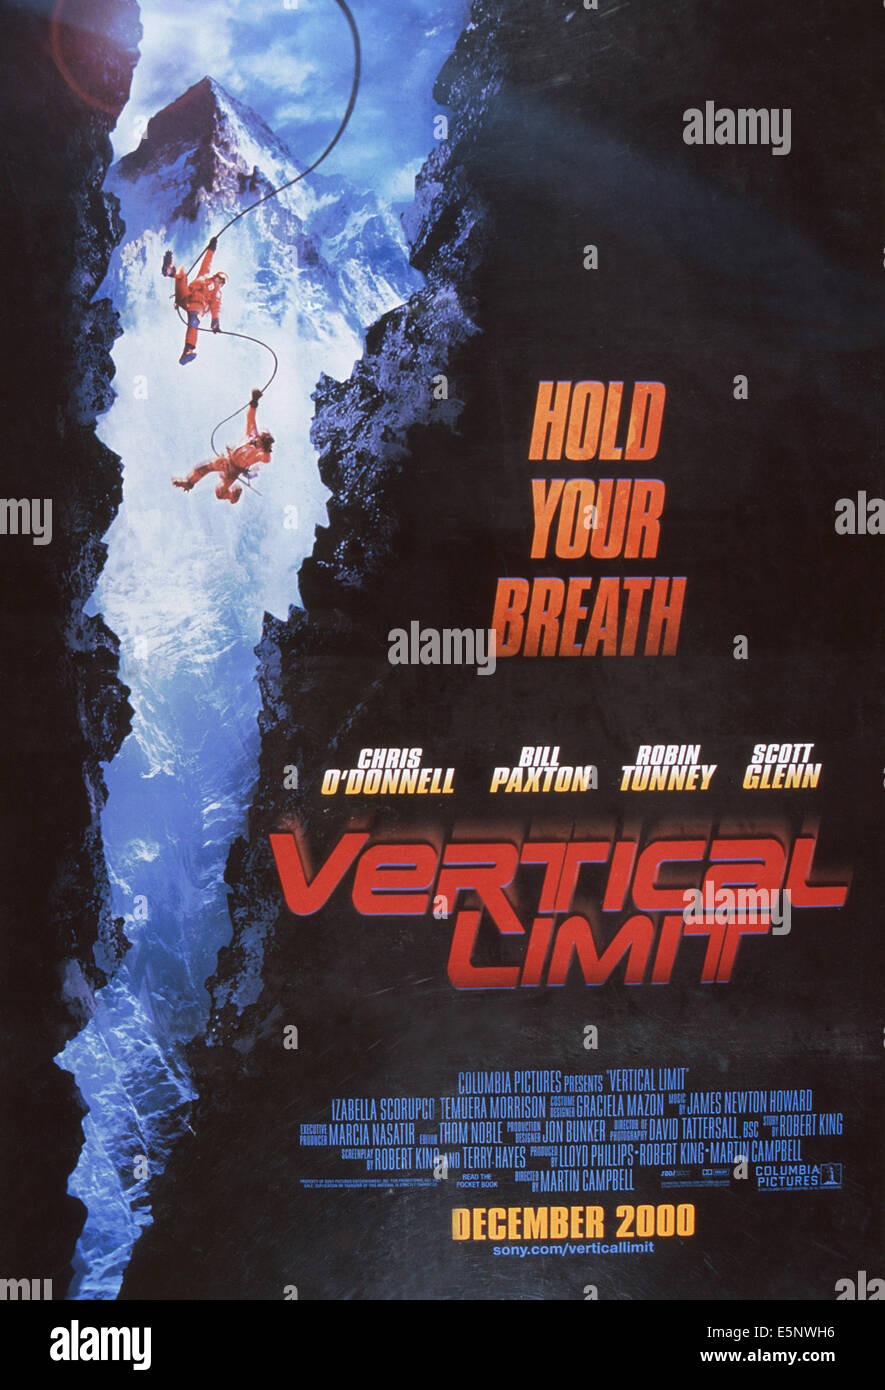 VERTICAL LIMIT, US advance poster art, 2000. ©Columbia Pictures/courtesy Everett Collection - Stock Image